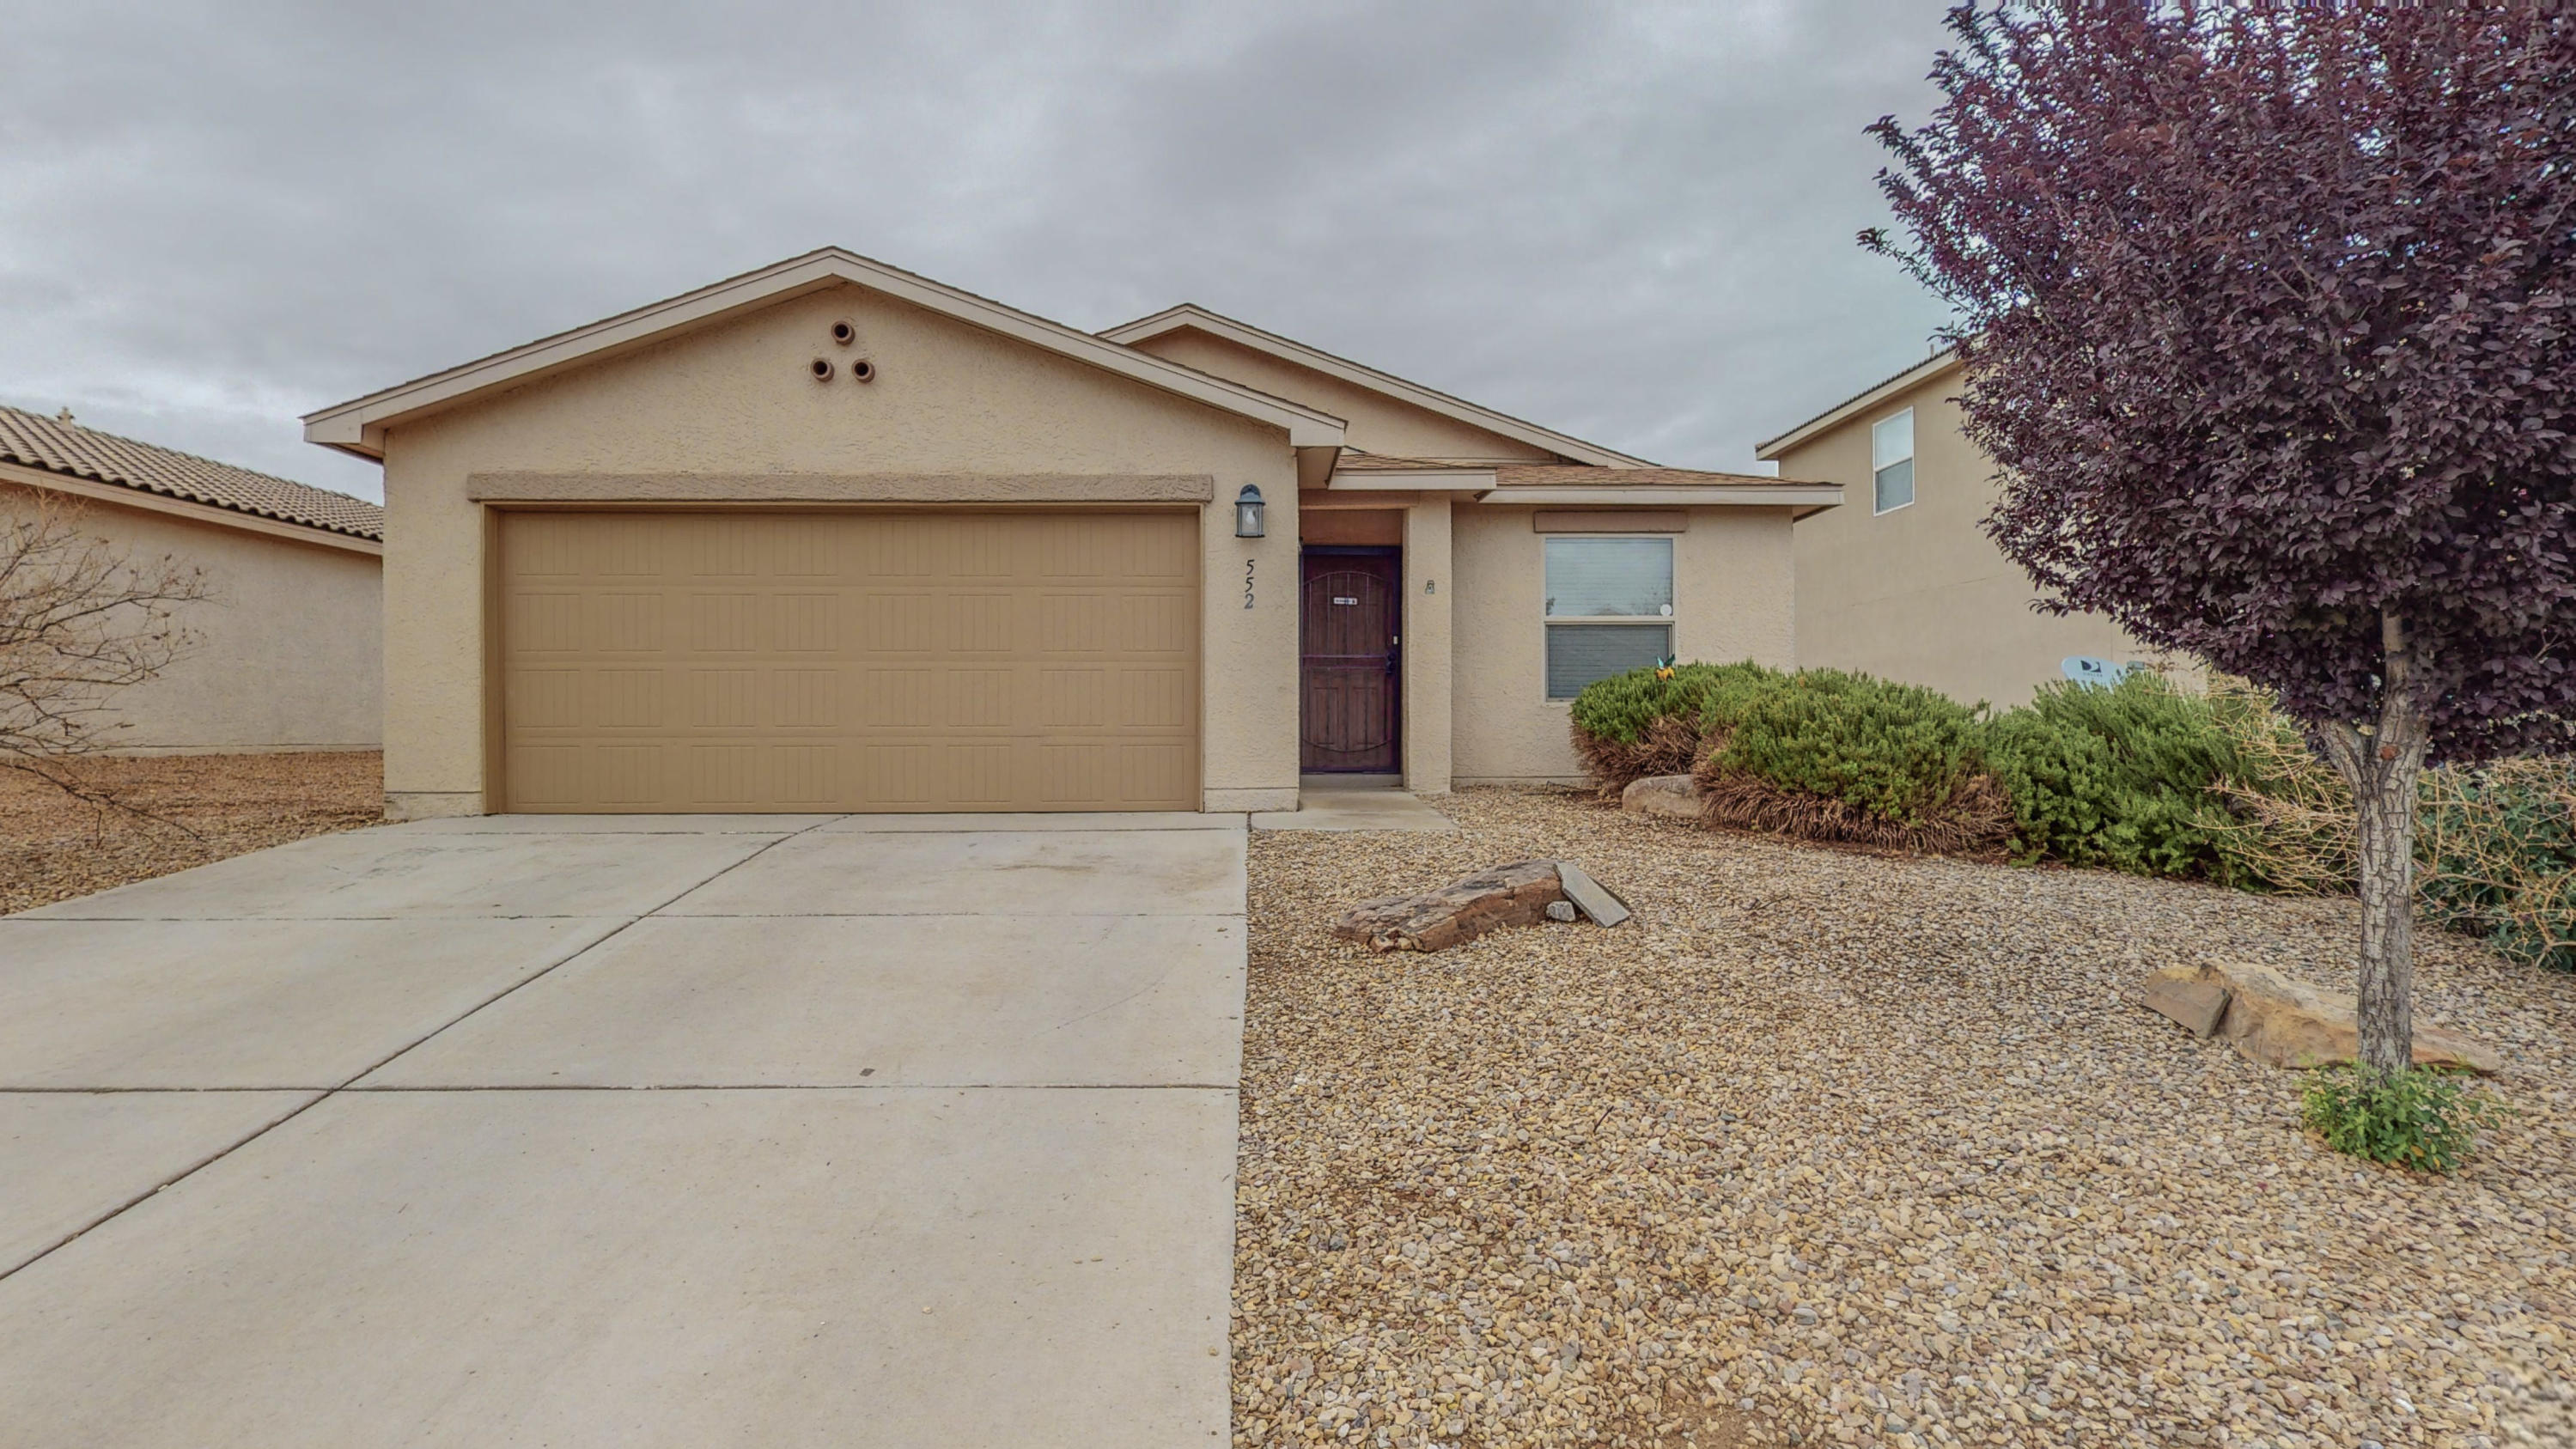 Come check out this beautiful home in Los Lunas! Close to schools, restaurants, and amenities! Not to mention, only minutes from I25. This 3 bedroom 2 bathroom home has new vinyl flooring throughout, new kitchen faucet, new shower heads in both bathrooms, granite countertops and tile backsplash in the kitchen, refrigerated air, and so much more. ALL APPLIANCES STAY!! Come check out this gem before its too late!